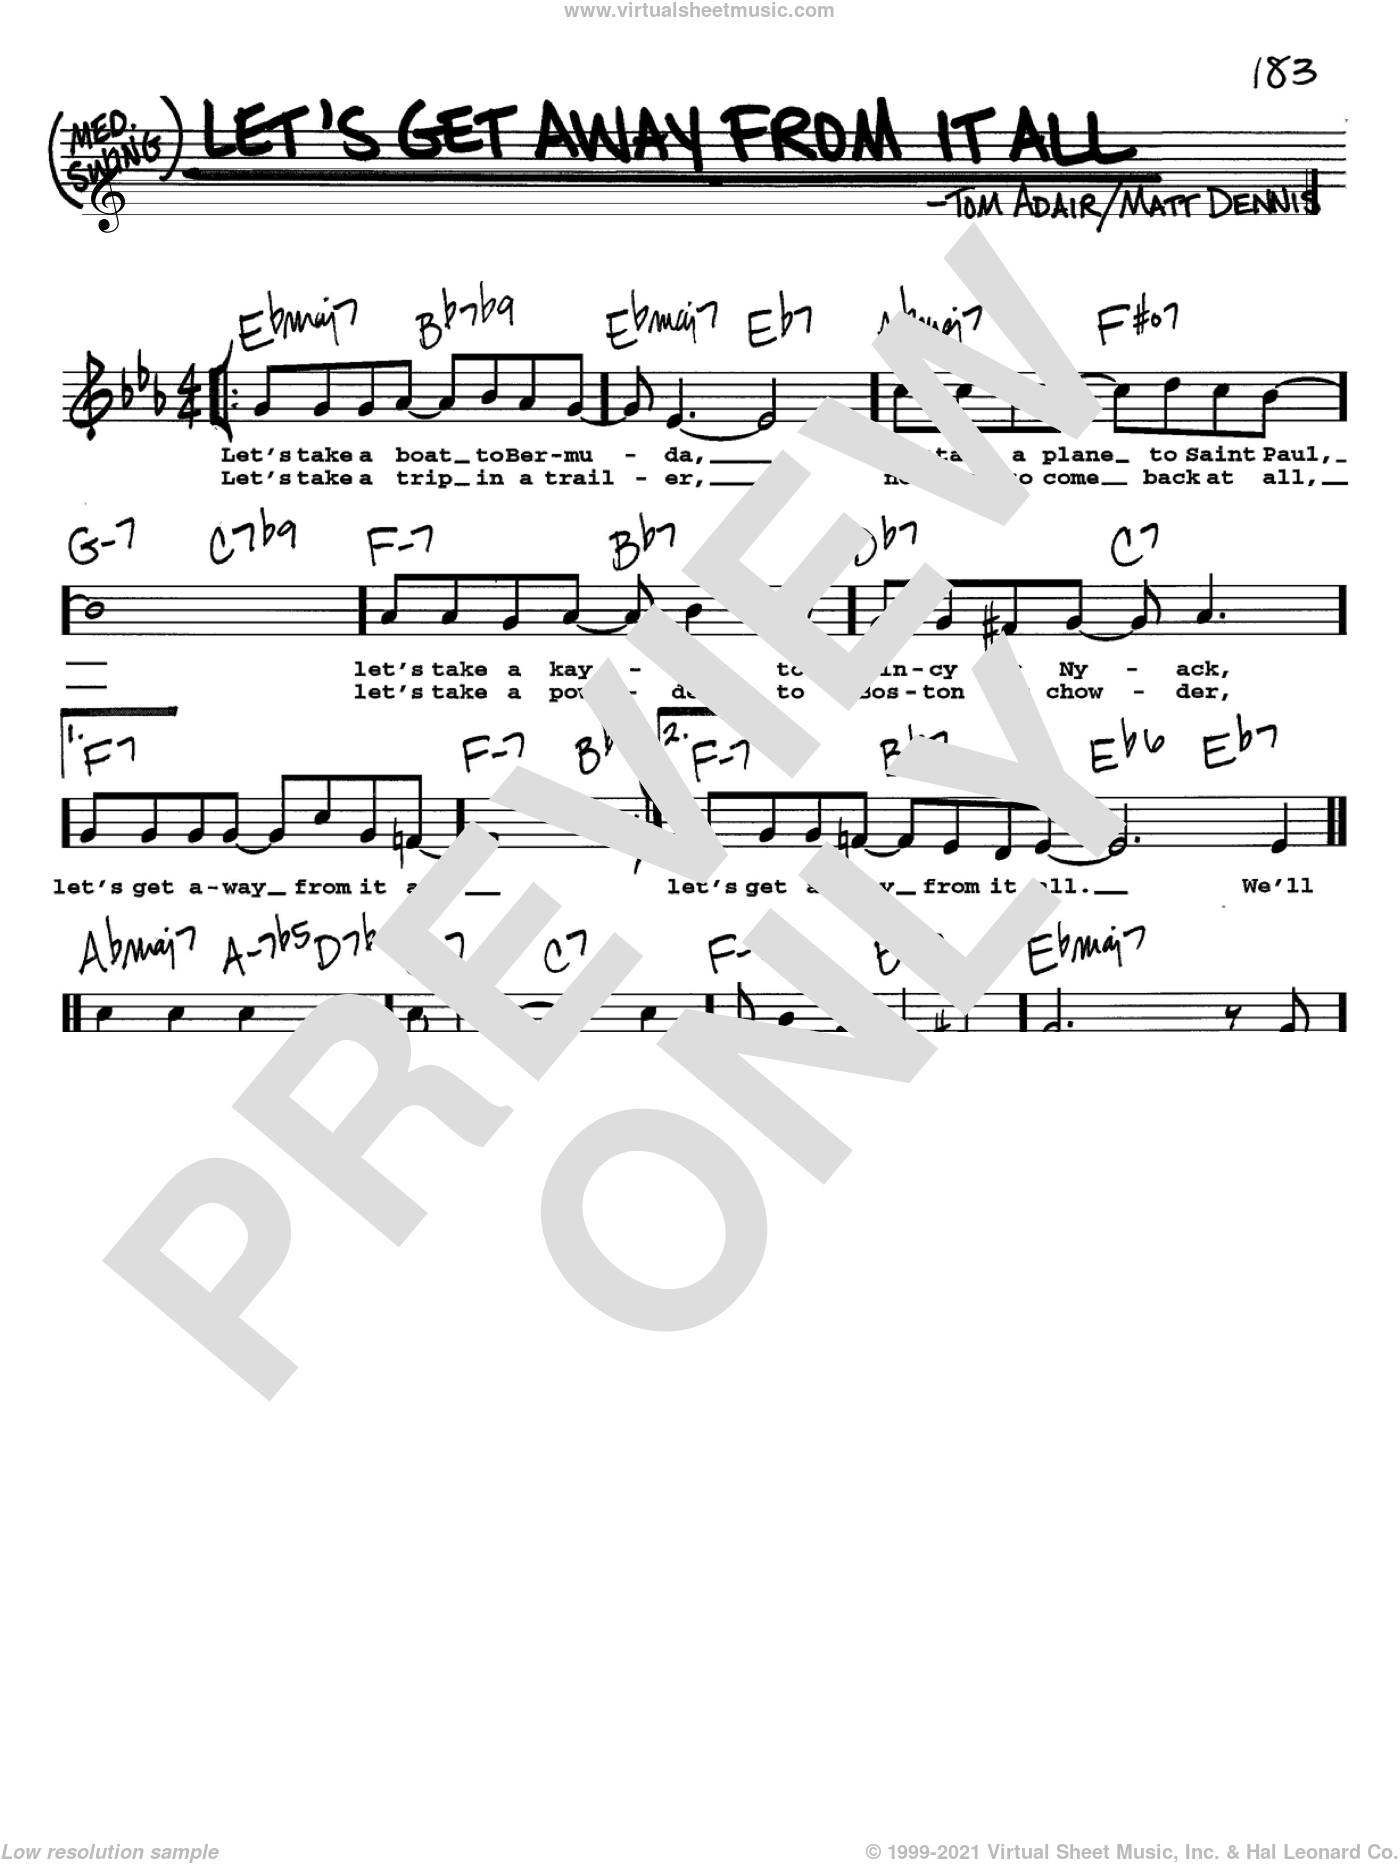 Let's Get Away From It All sheet music for voice and other instruments (Vocal Volume 2) by Frank Sinatra, Matt Dennis and Tom Adair, intermediate voice. Score Image Preview.